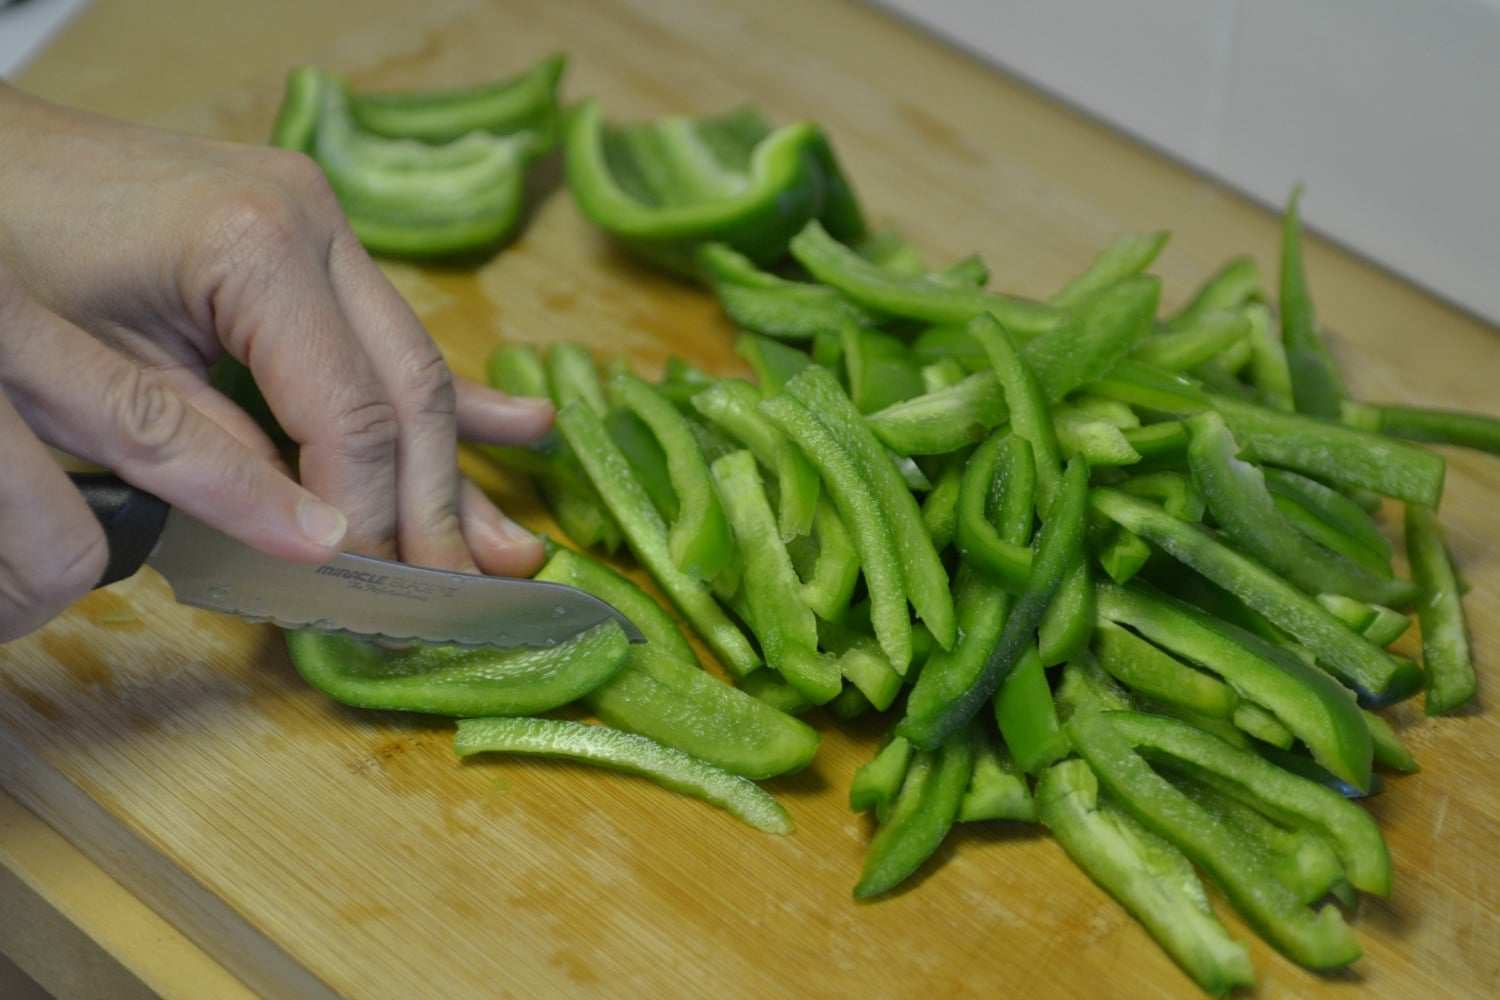 Slice the green peppers into thin strips.